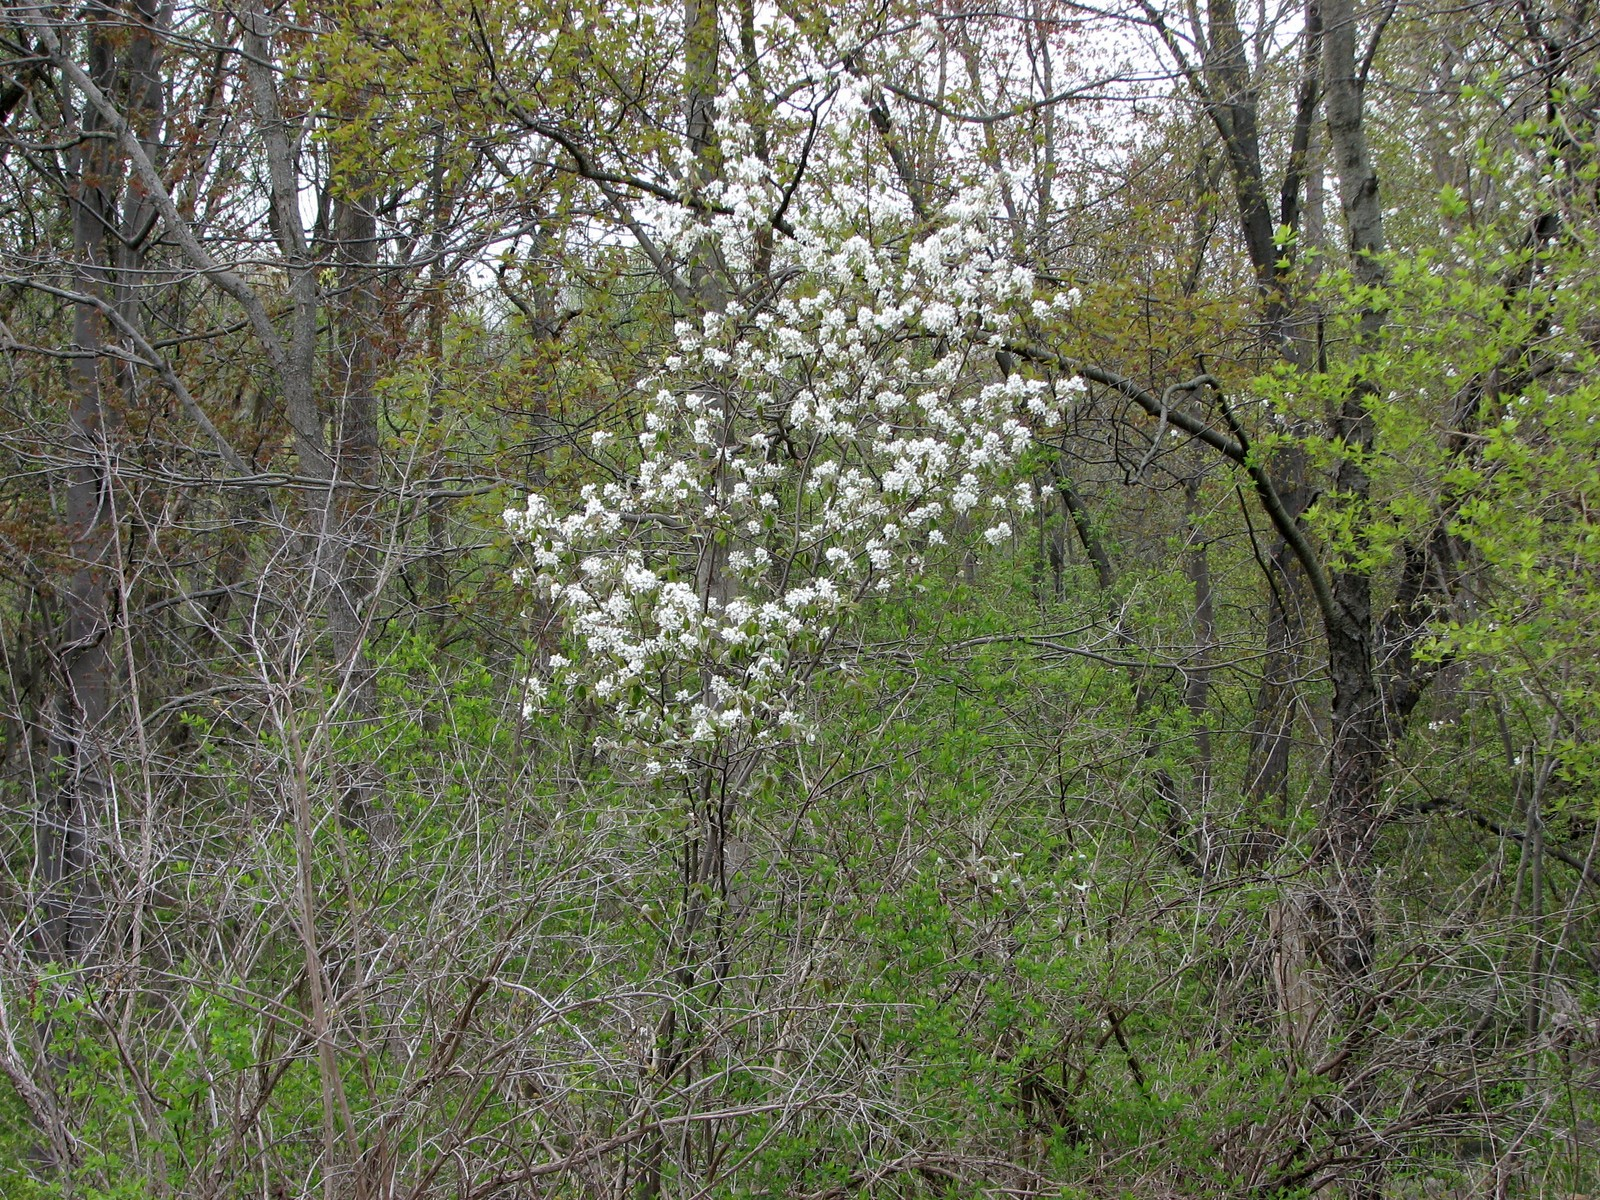 2008050118252823 Downy Serviceberry Or Juneberry